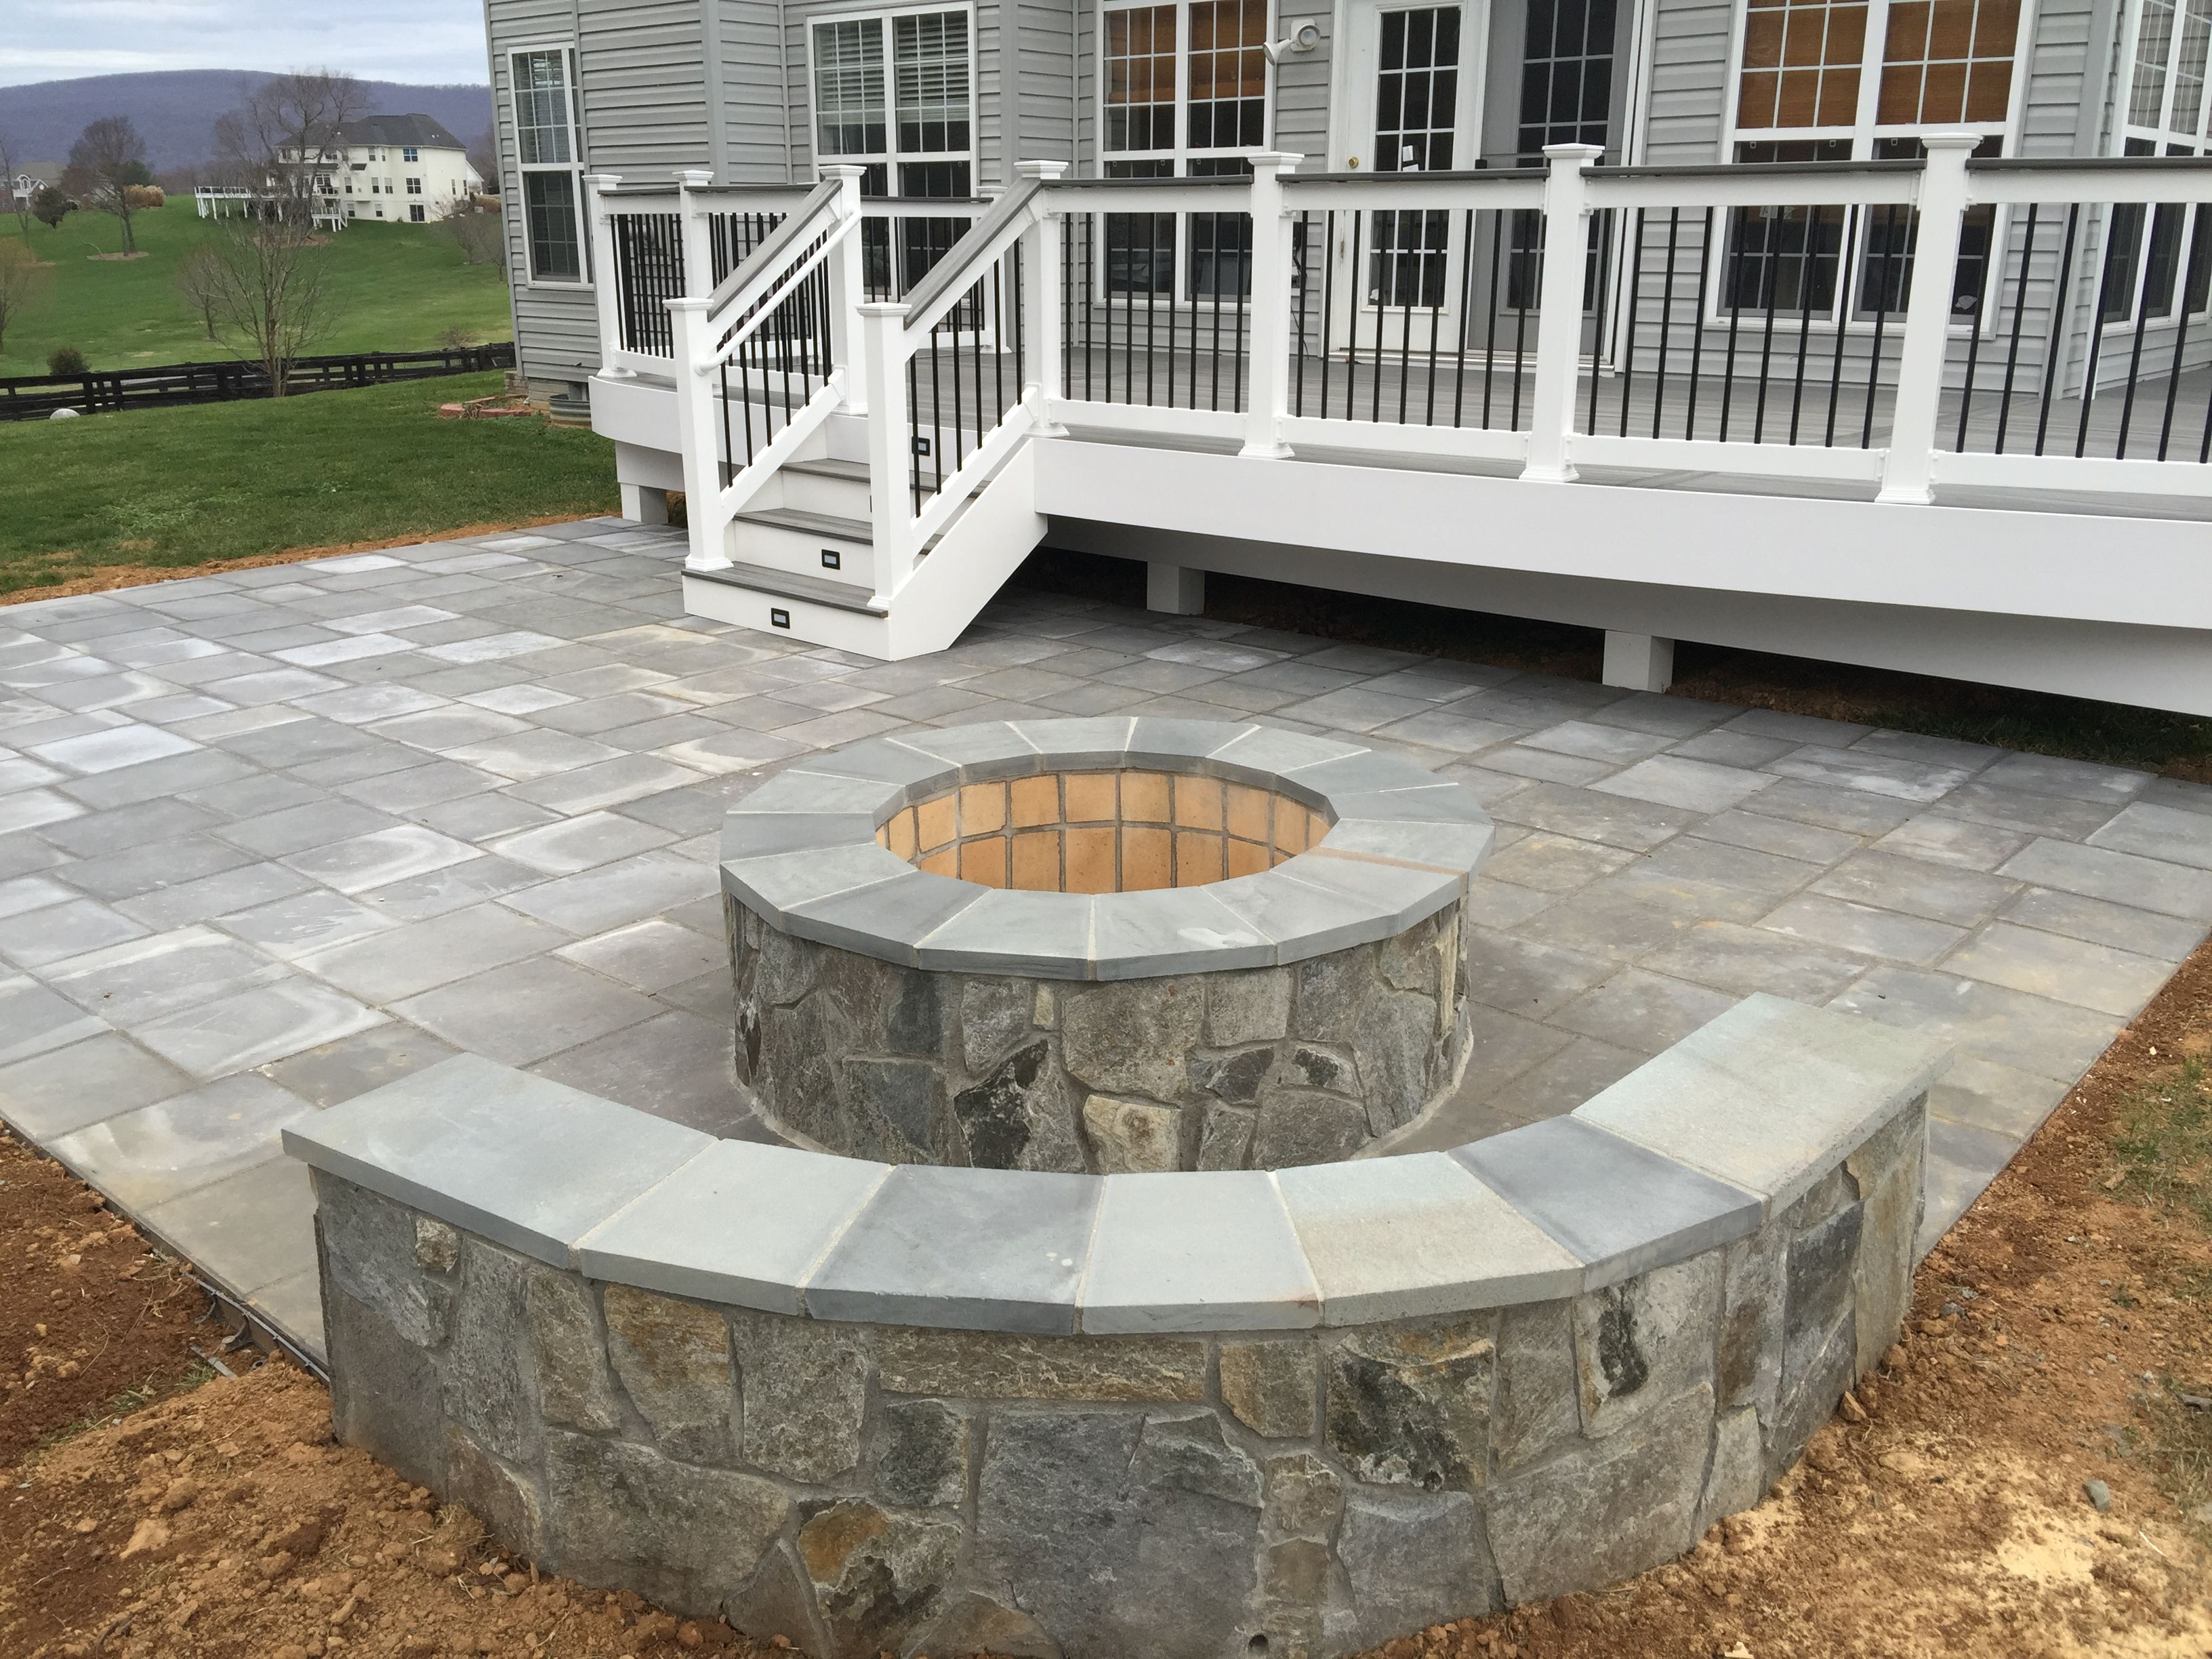 A beautiful paver patio with stone seating walls and a for Small patio design ideas